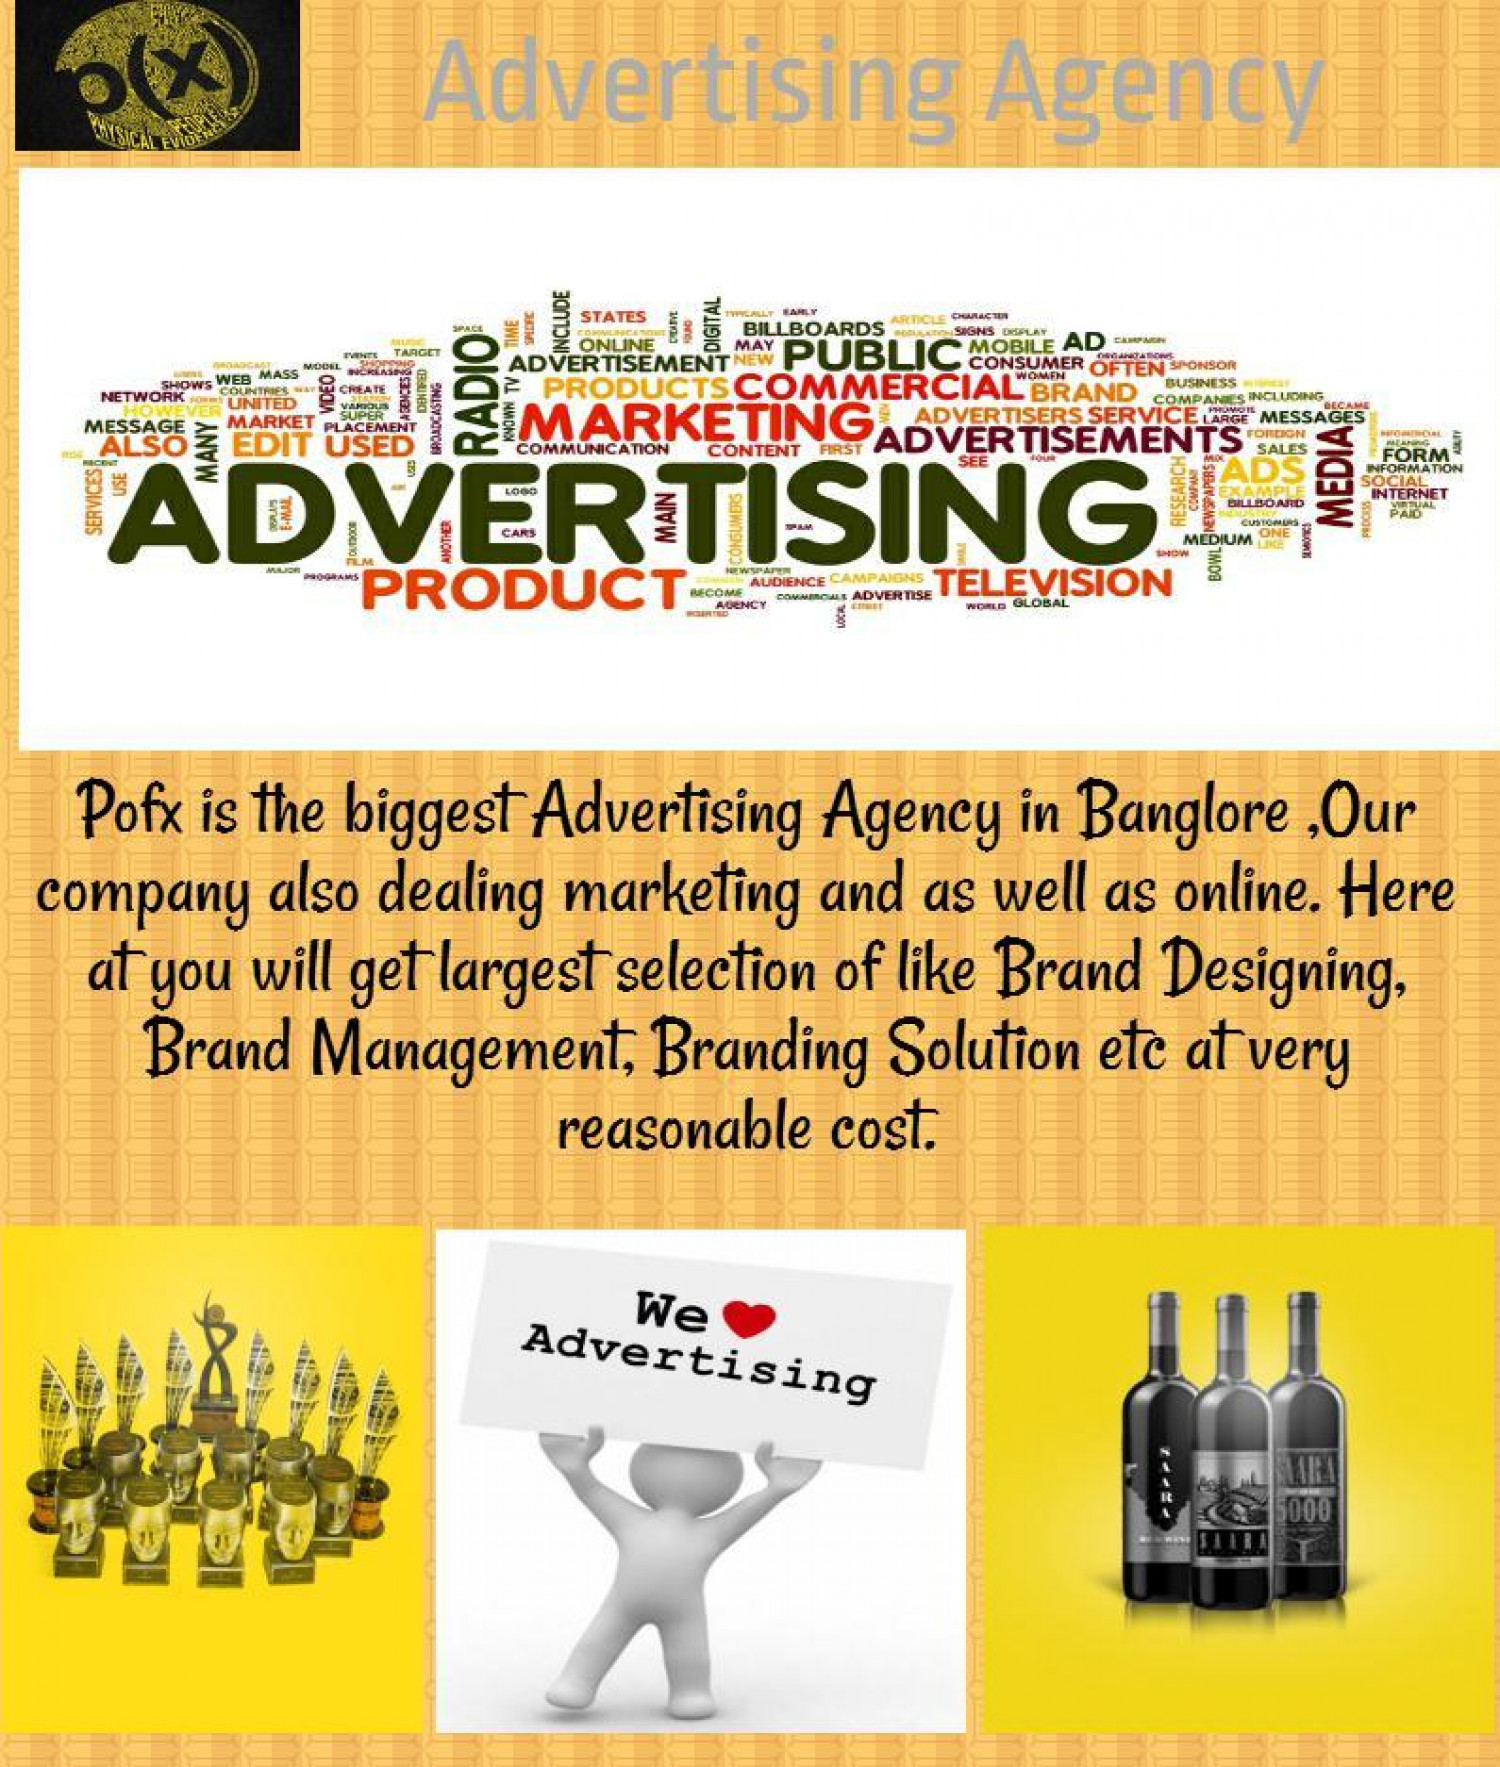 Advertising Agency Infographic